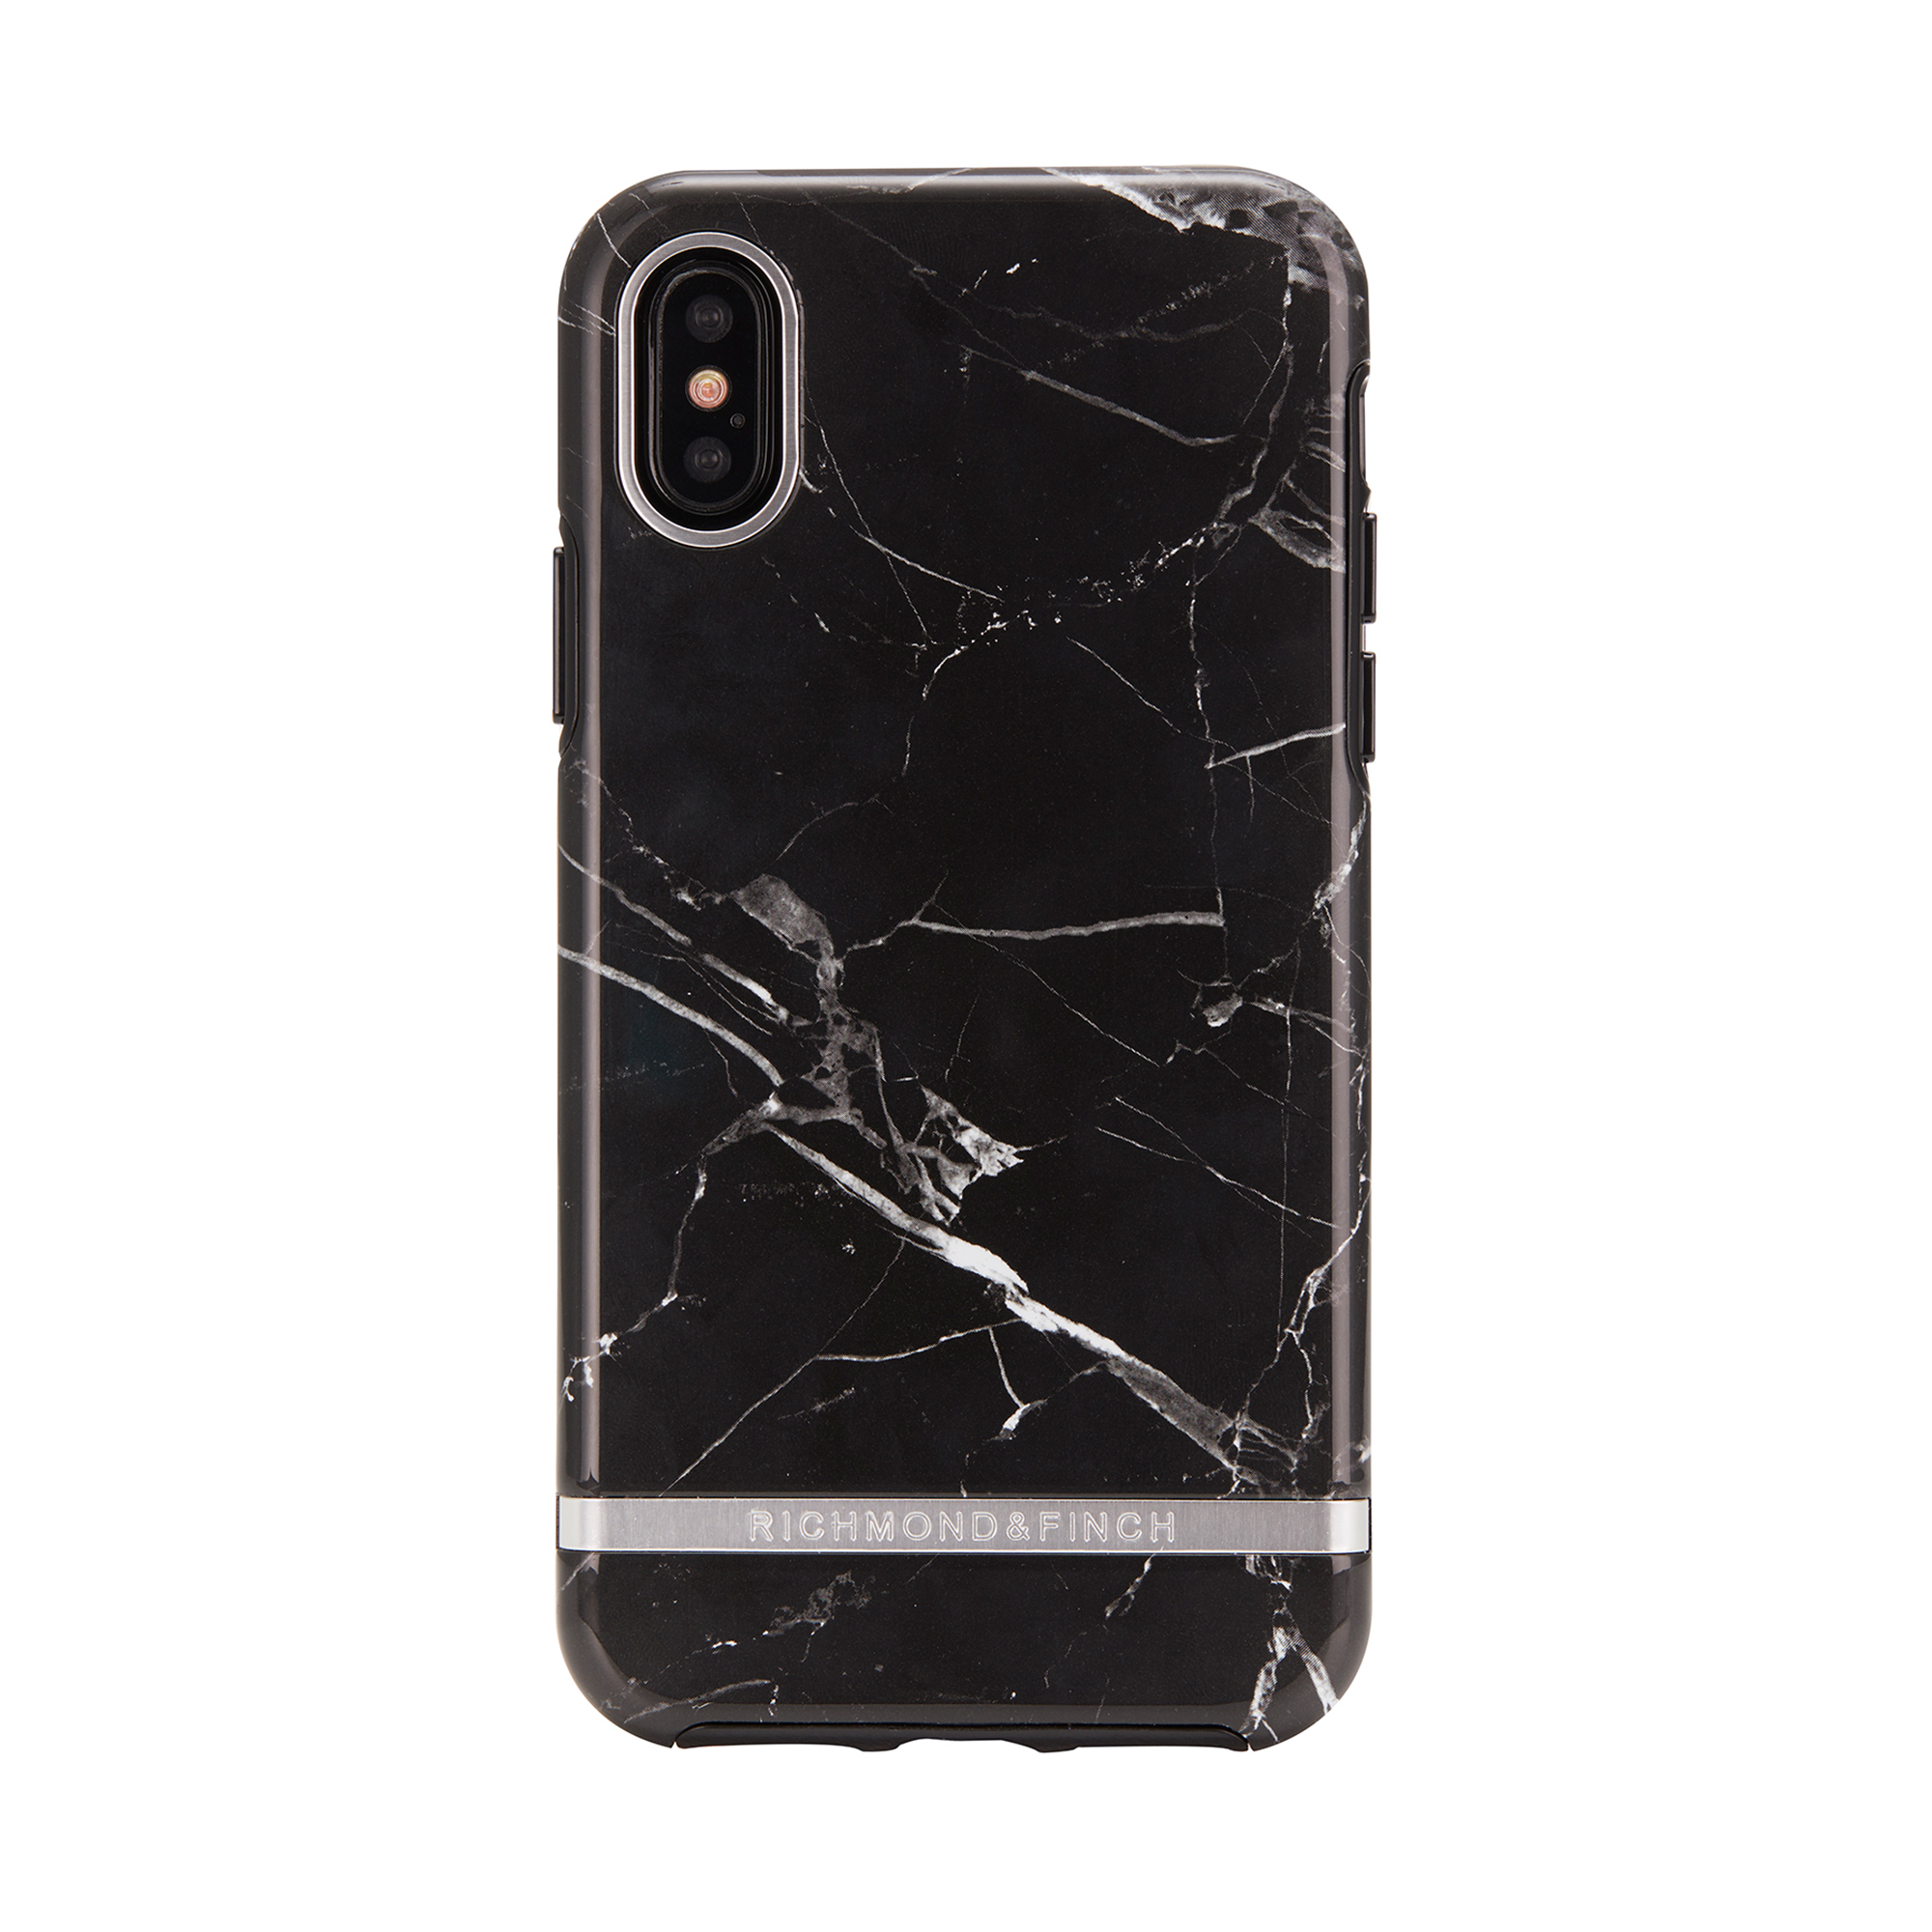 online retailer a89eb 102b0 Freedom Case For iPhone XS Max - Black Marble